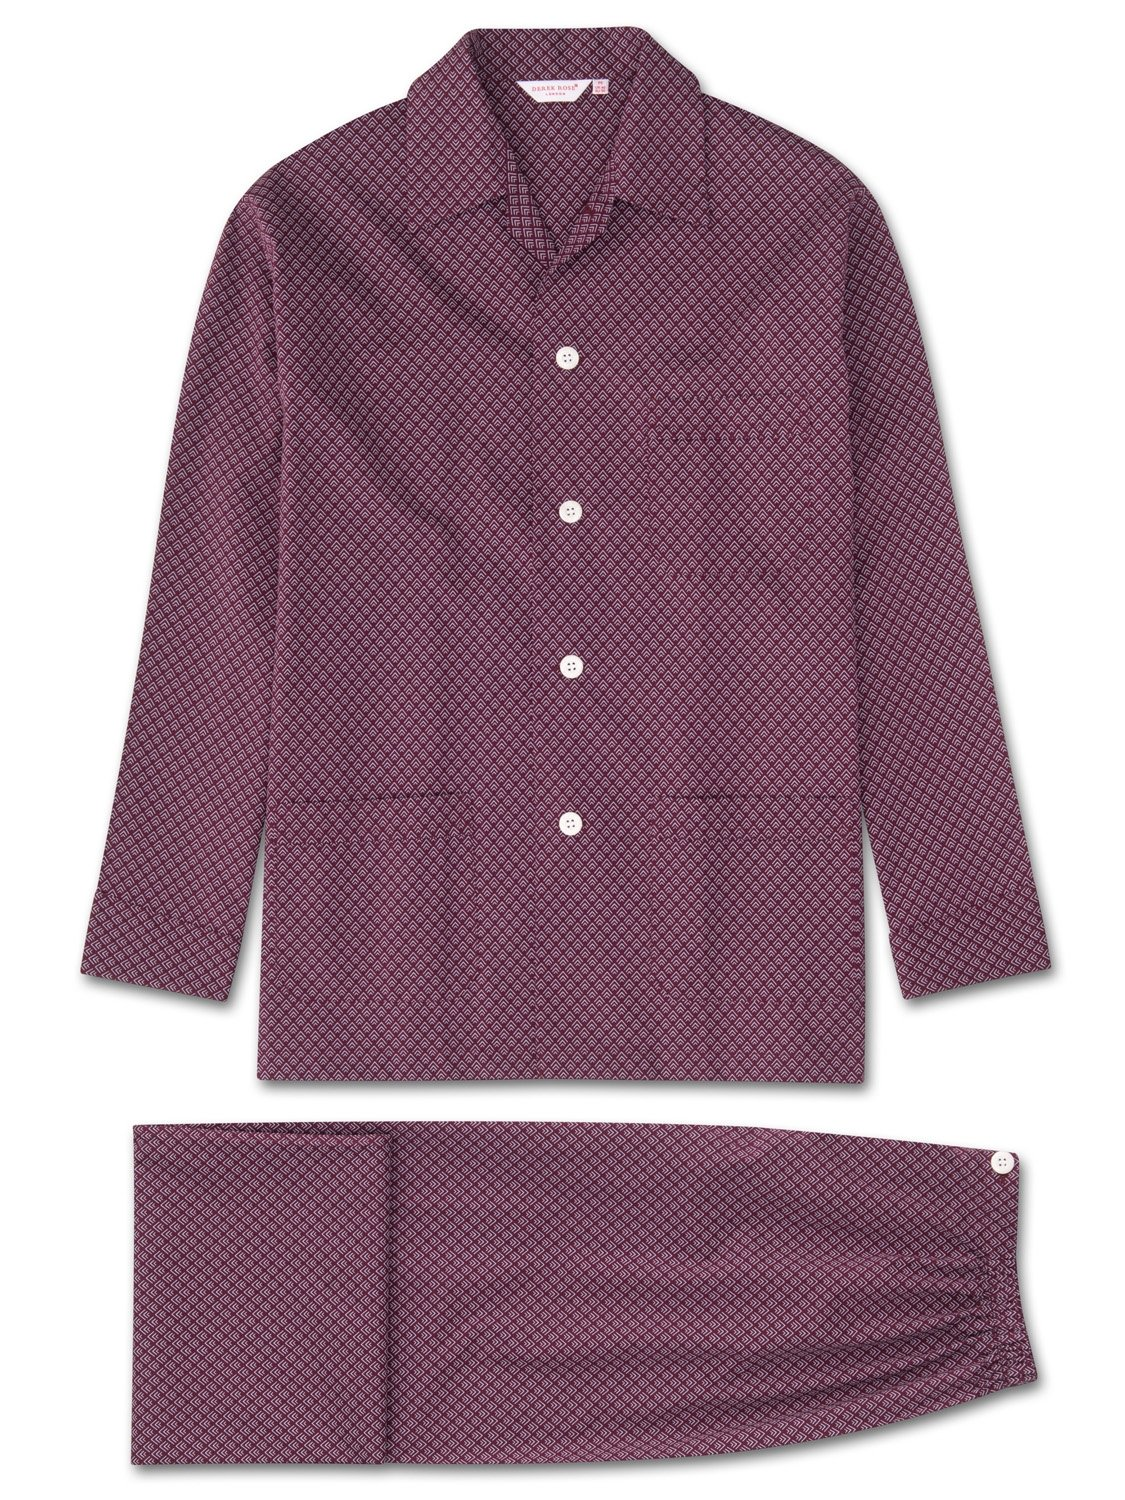 Men's Classic Fit Pyjamas Nelson 66 Cotton Batiste Burgundy